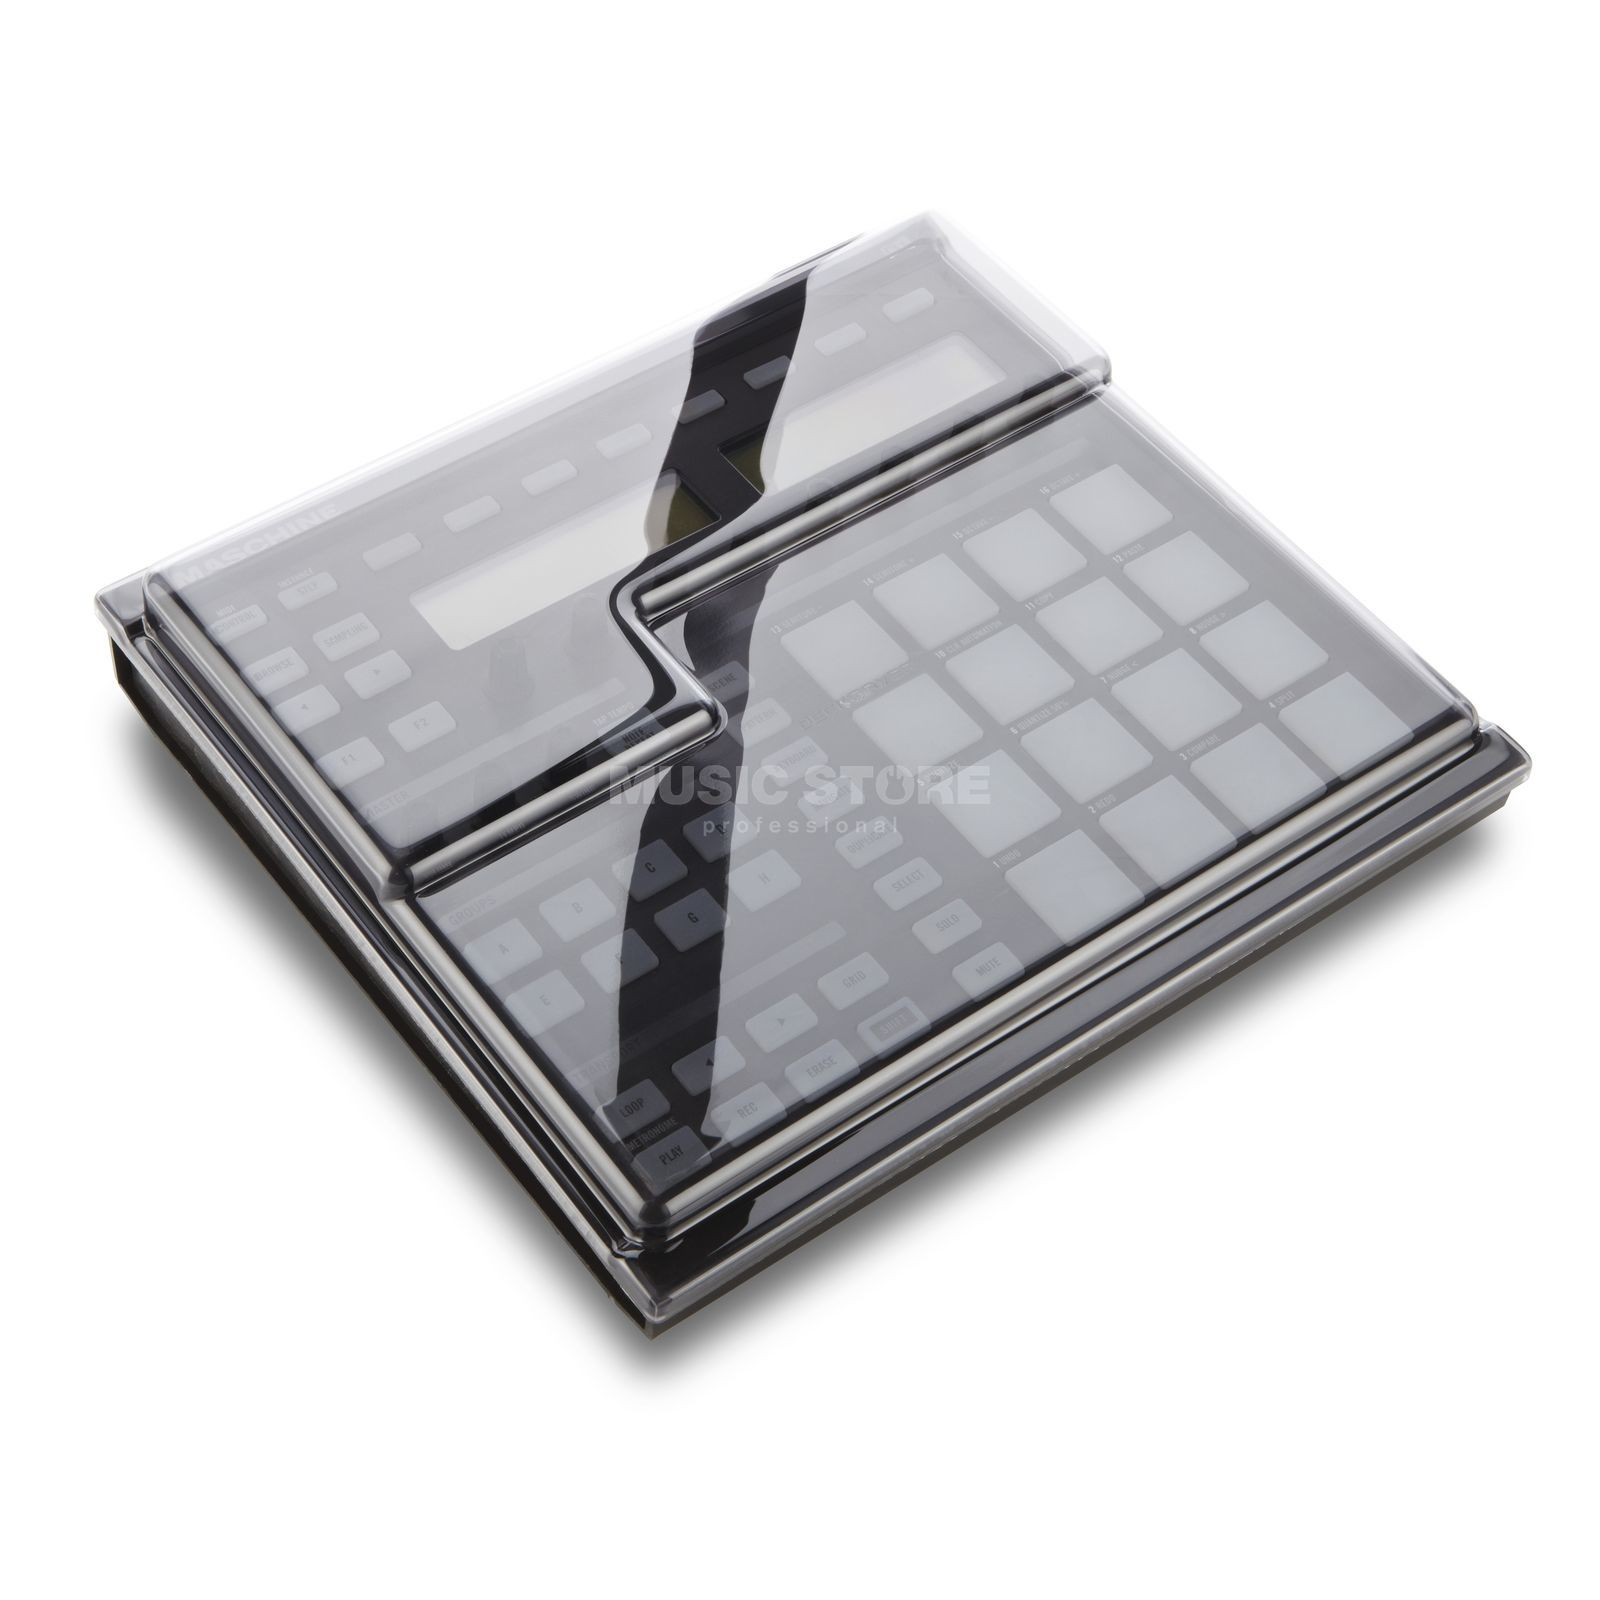 Decksaver NI Maschine Cover  Product Image